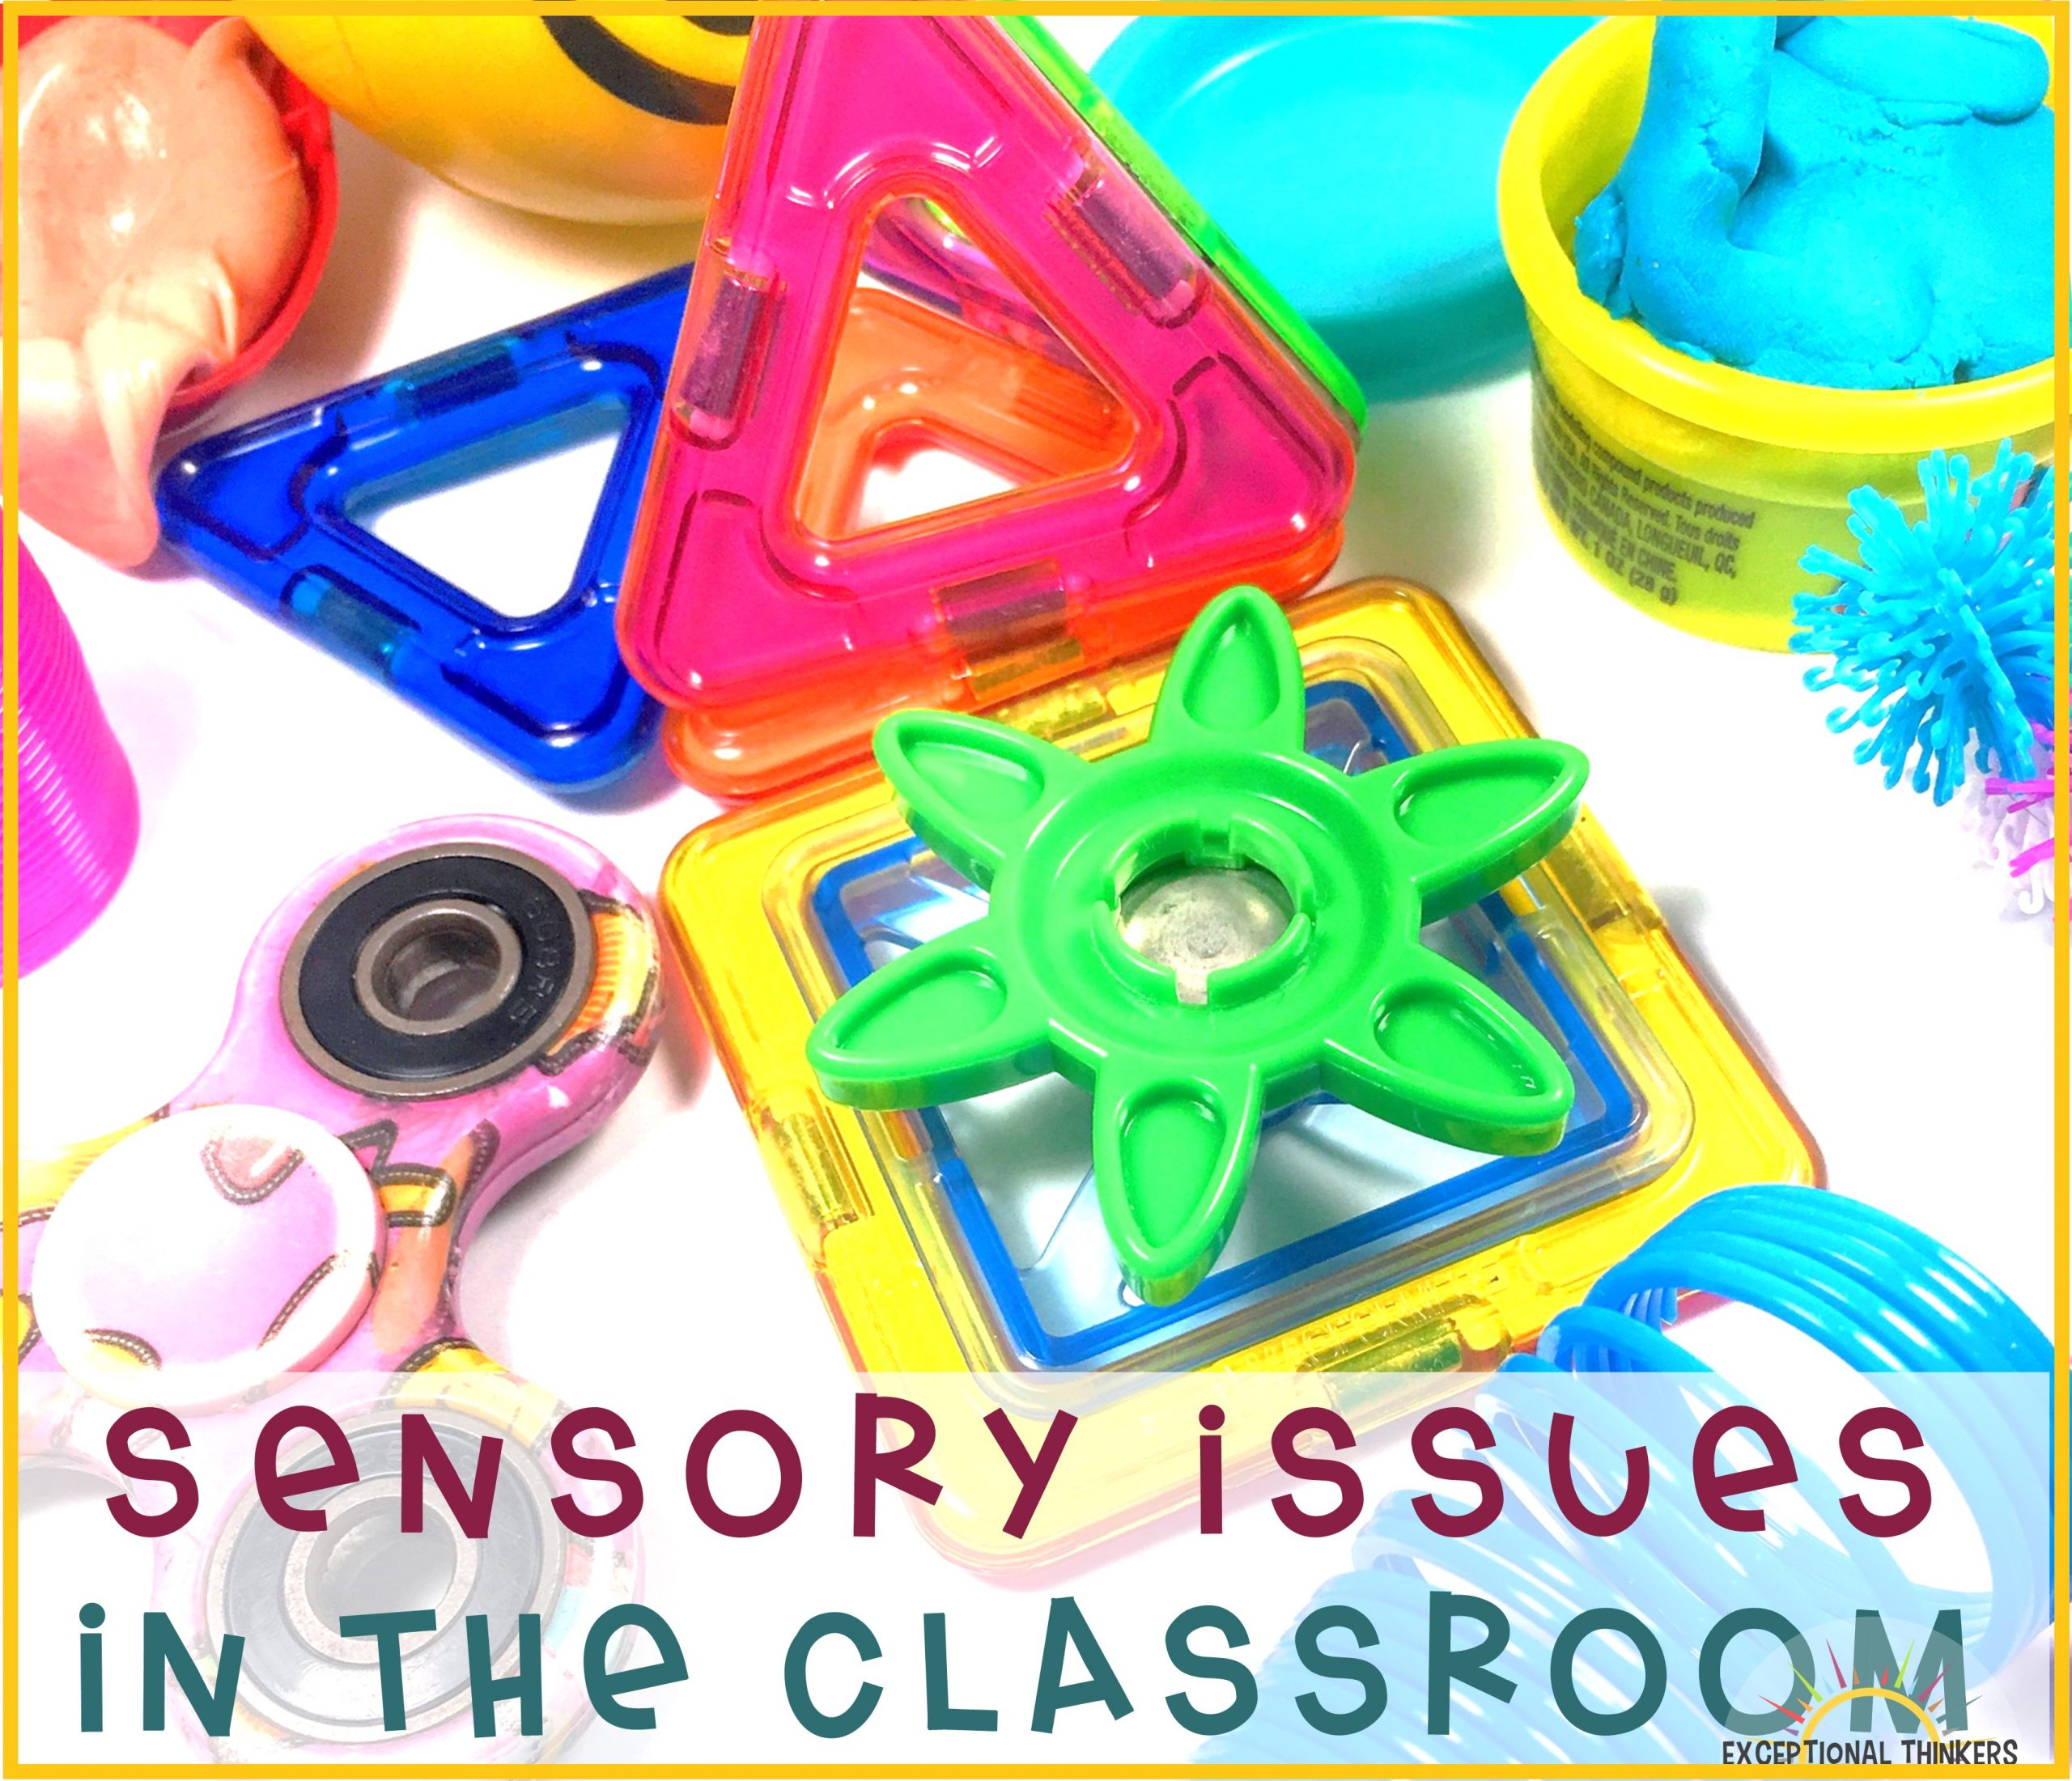 The Teacher's Guide to Accommodating Sensory Issues